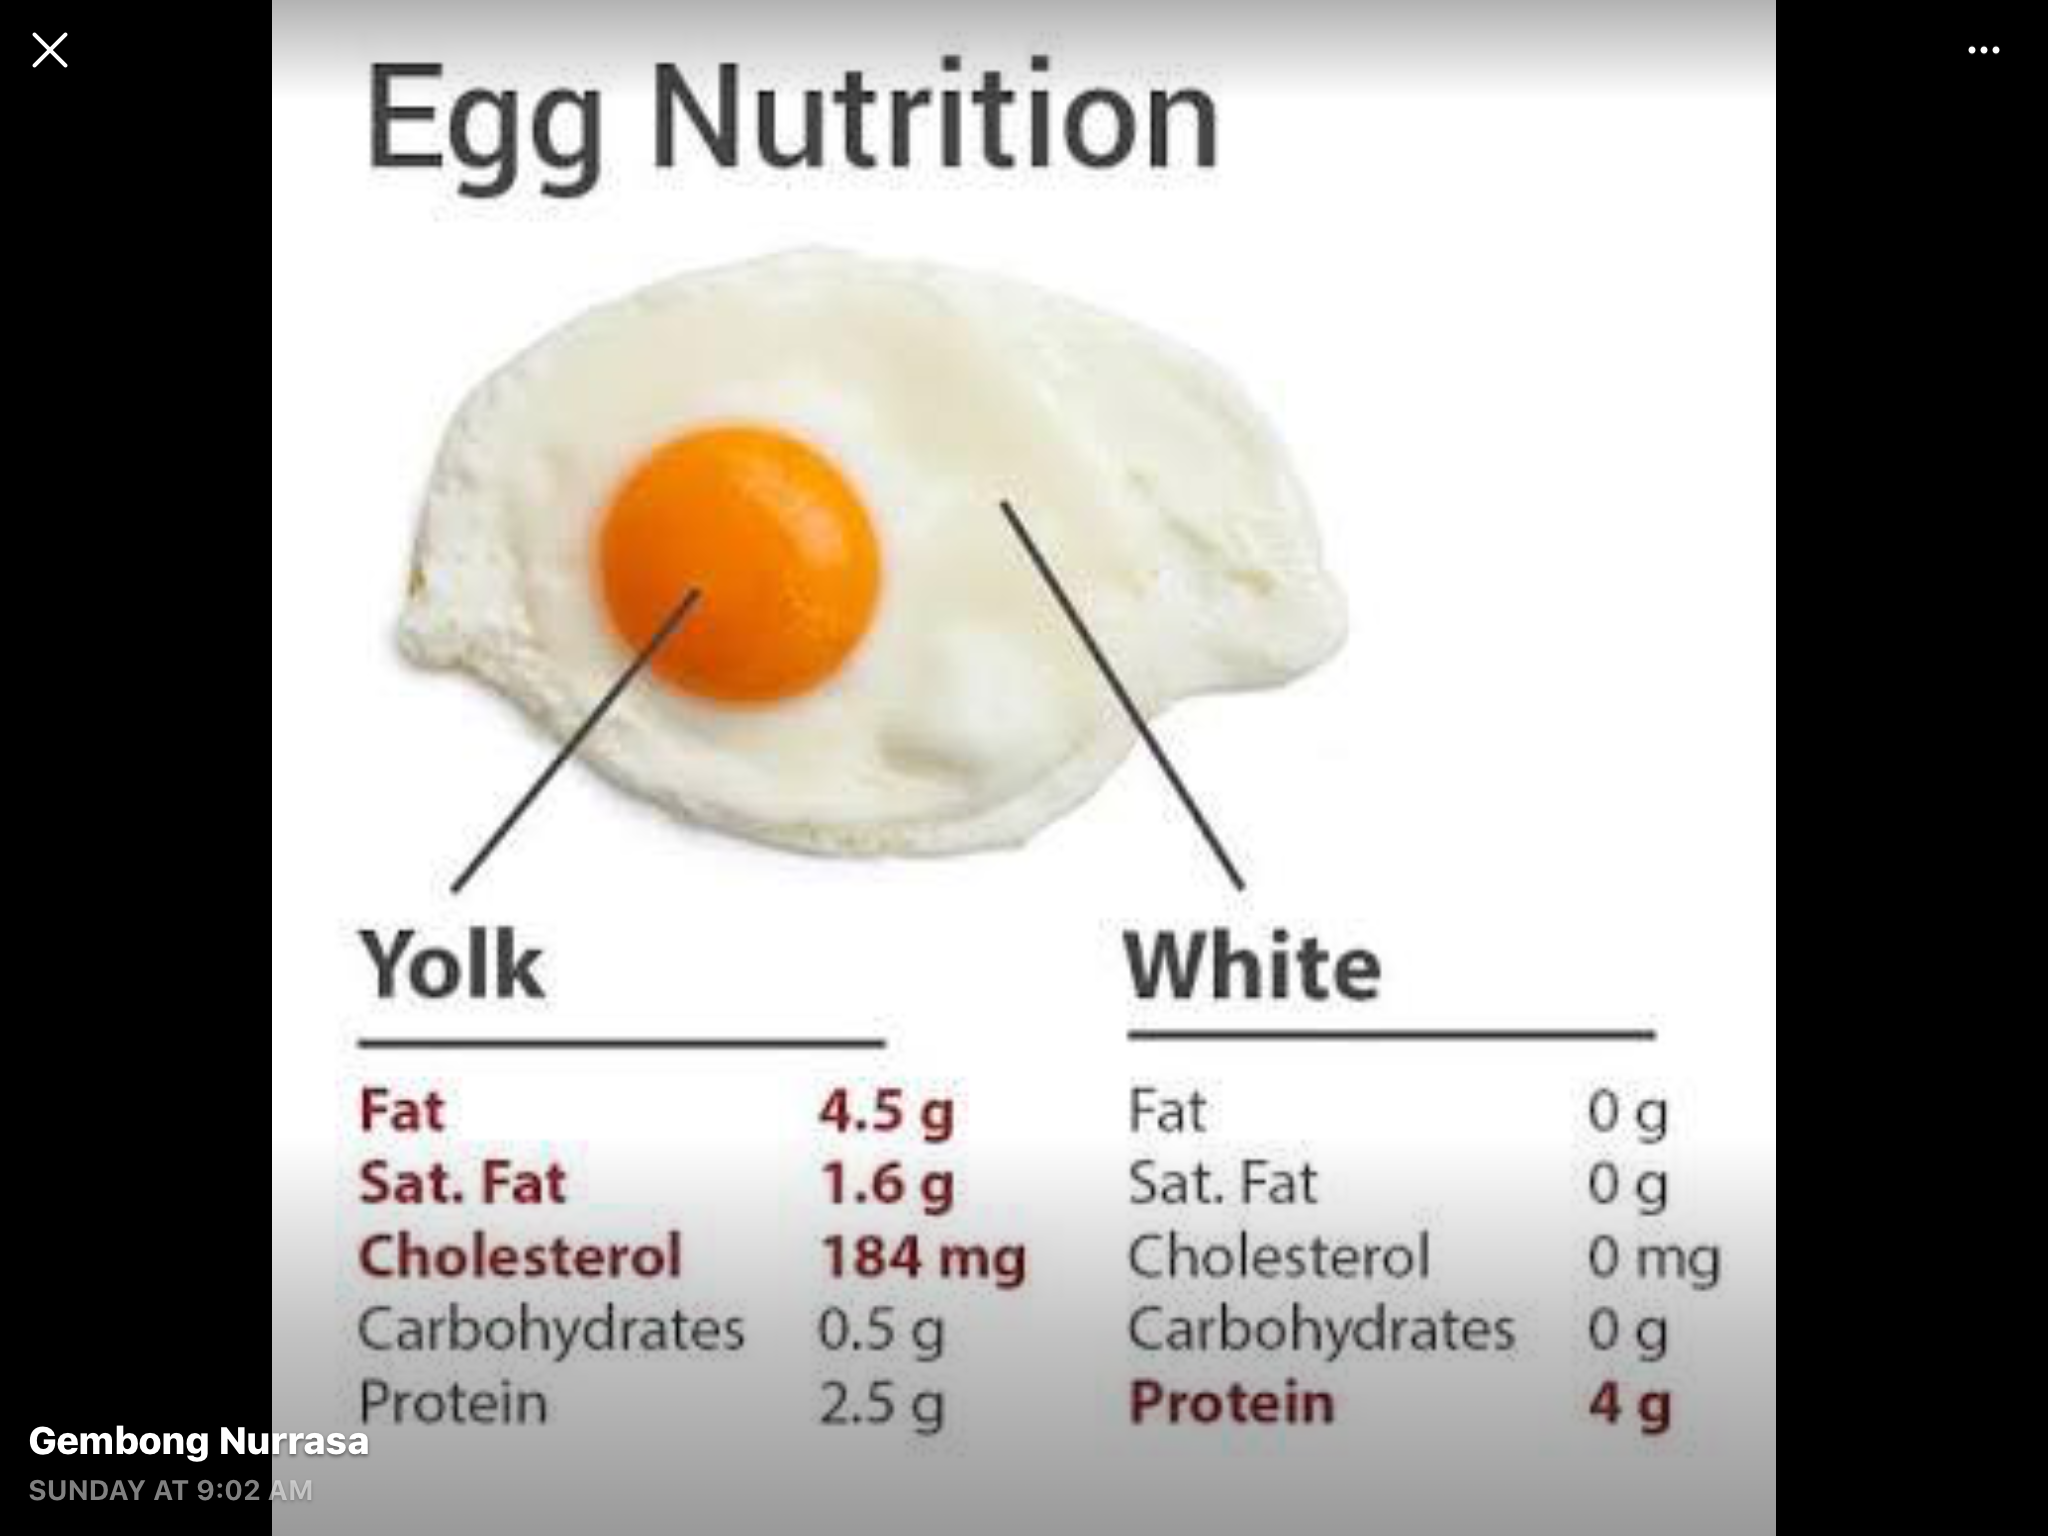 Pin By Carolyn Mccoy On Keto Diet Food Egg Nutrition Facts Egg White Nutrition Strawberry Nutrition Facts